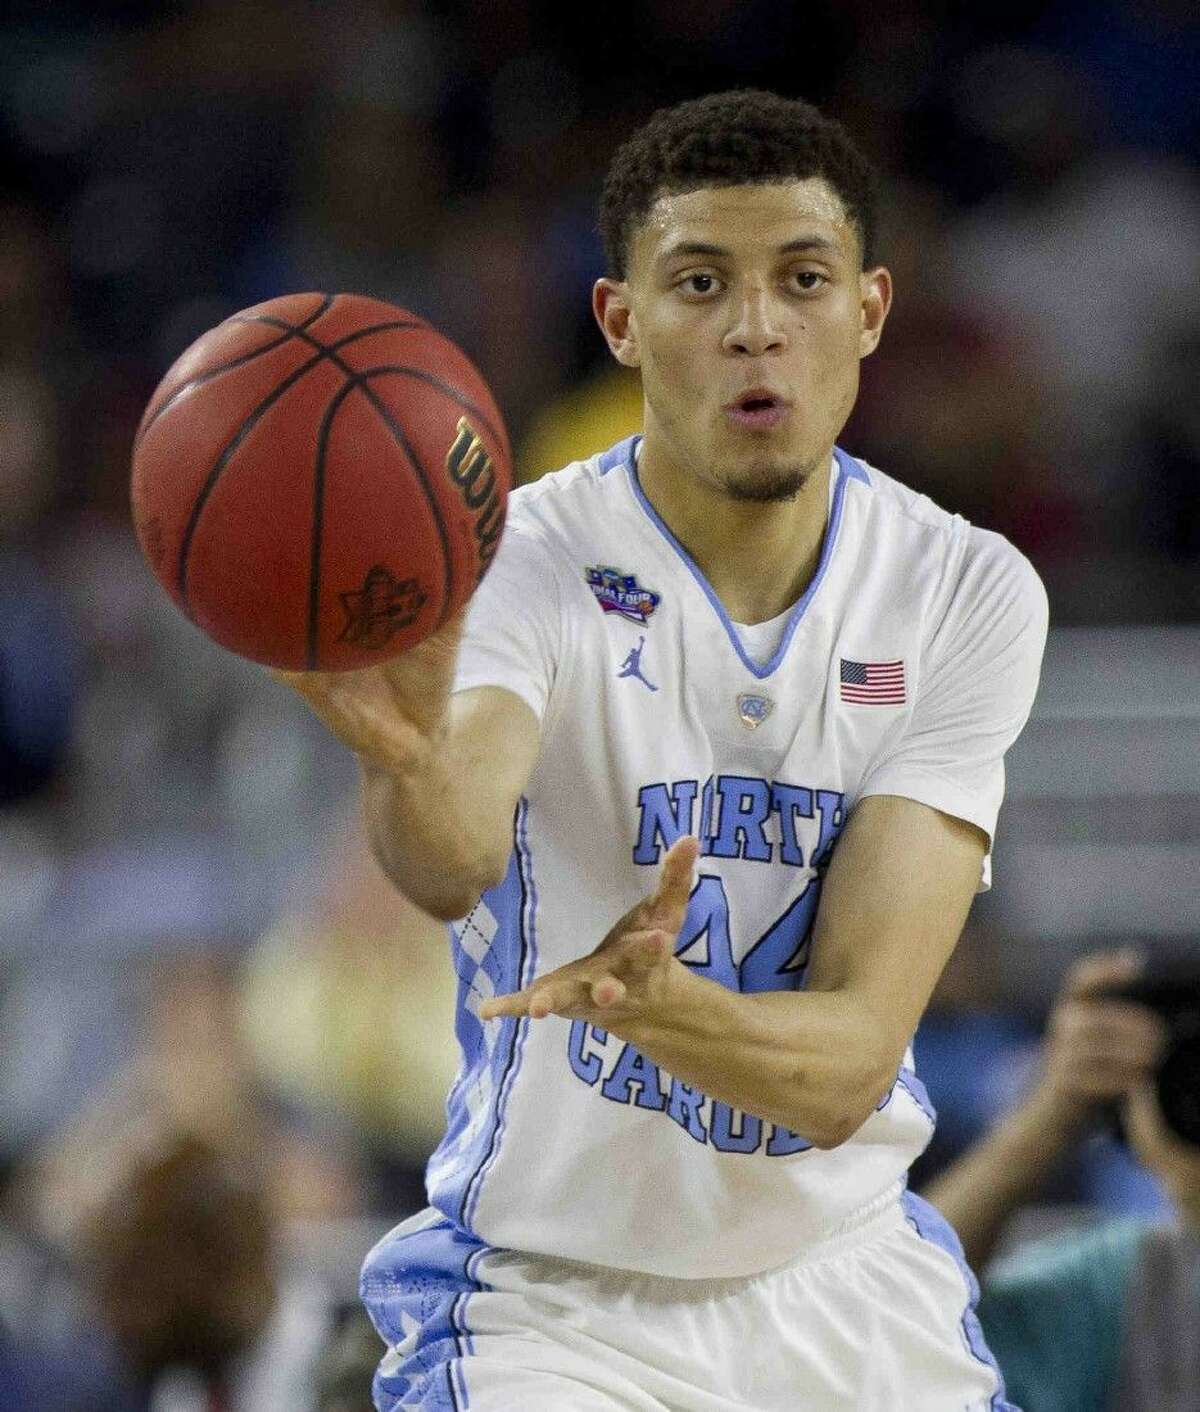 North Carolina guard Justin Jackson makes a pass during first half of an NCAA Final Four semifinal college basketball game Saturday, April 2, 2016, at NRG Stadium in Houston. Jackson was one of three Houston-area natives in key roles returning home for the Final Four.